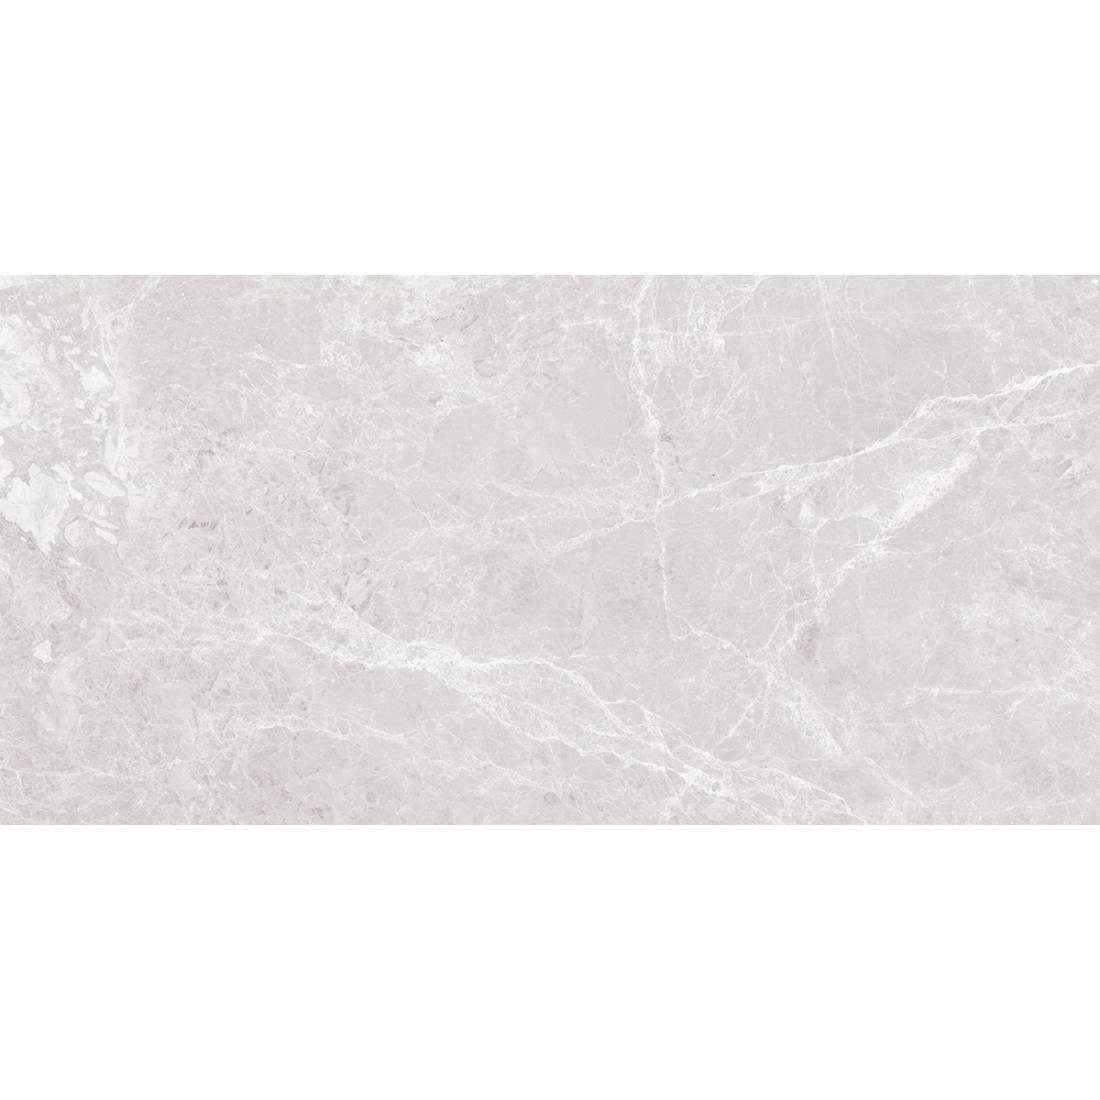 Paradise 60x120 Silver Gloss 1